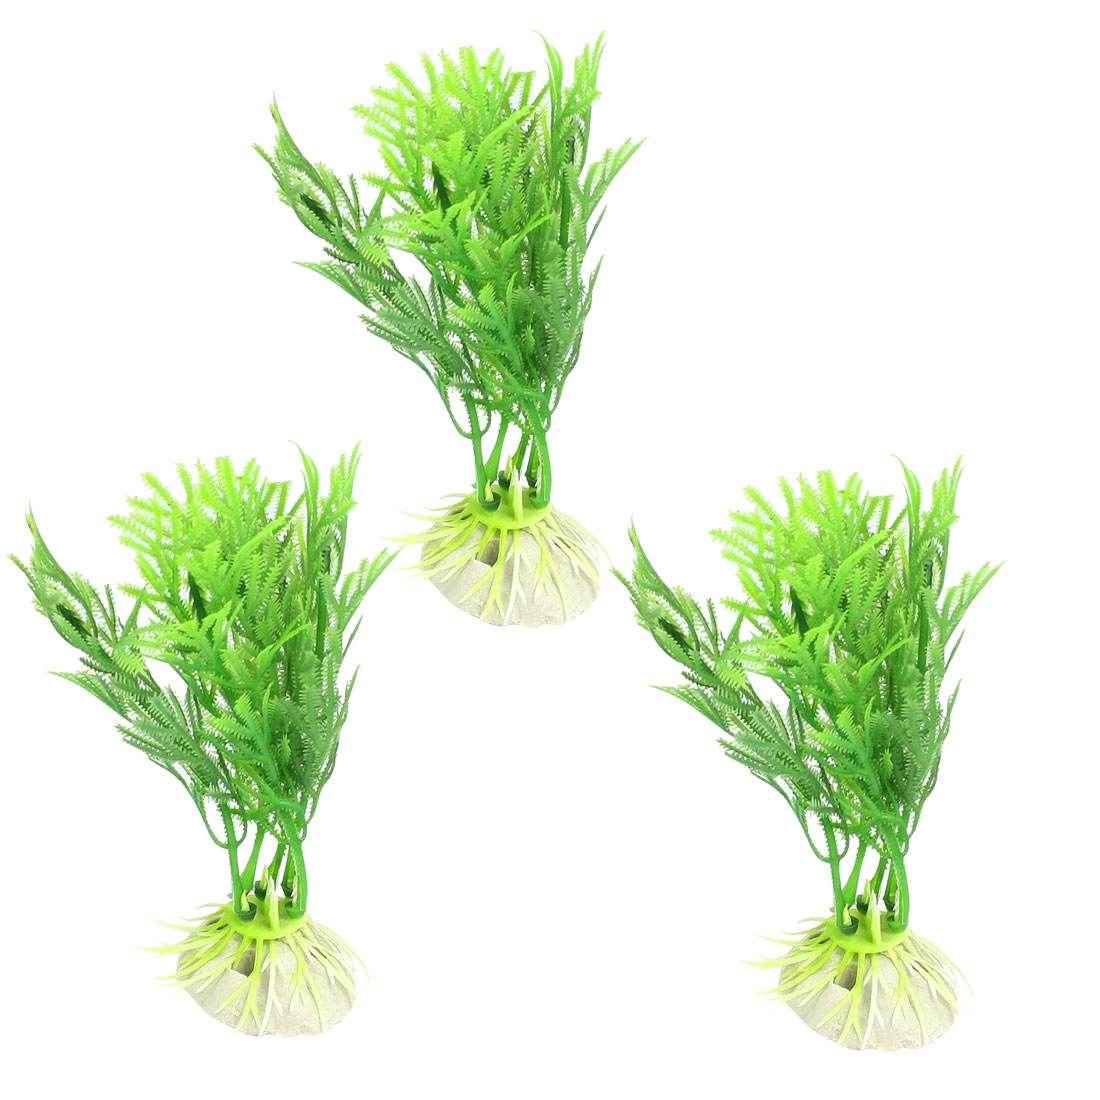 3 Pcs Fish Tank Aquascaping Green Plastic Plants Grass